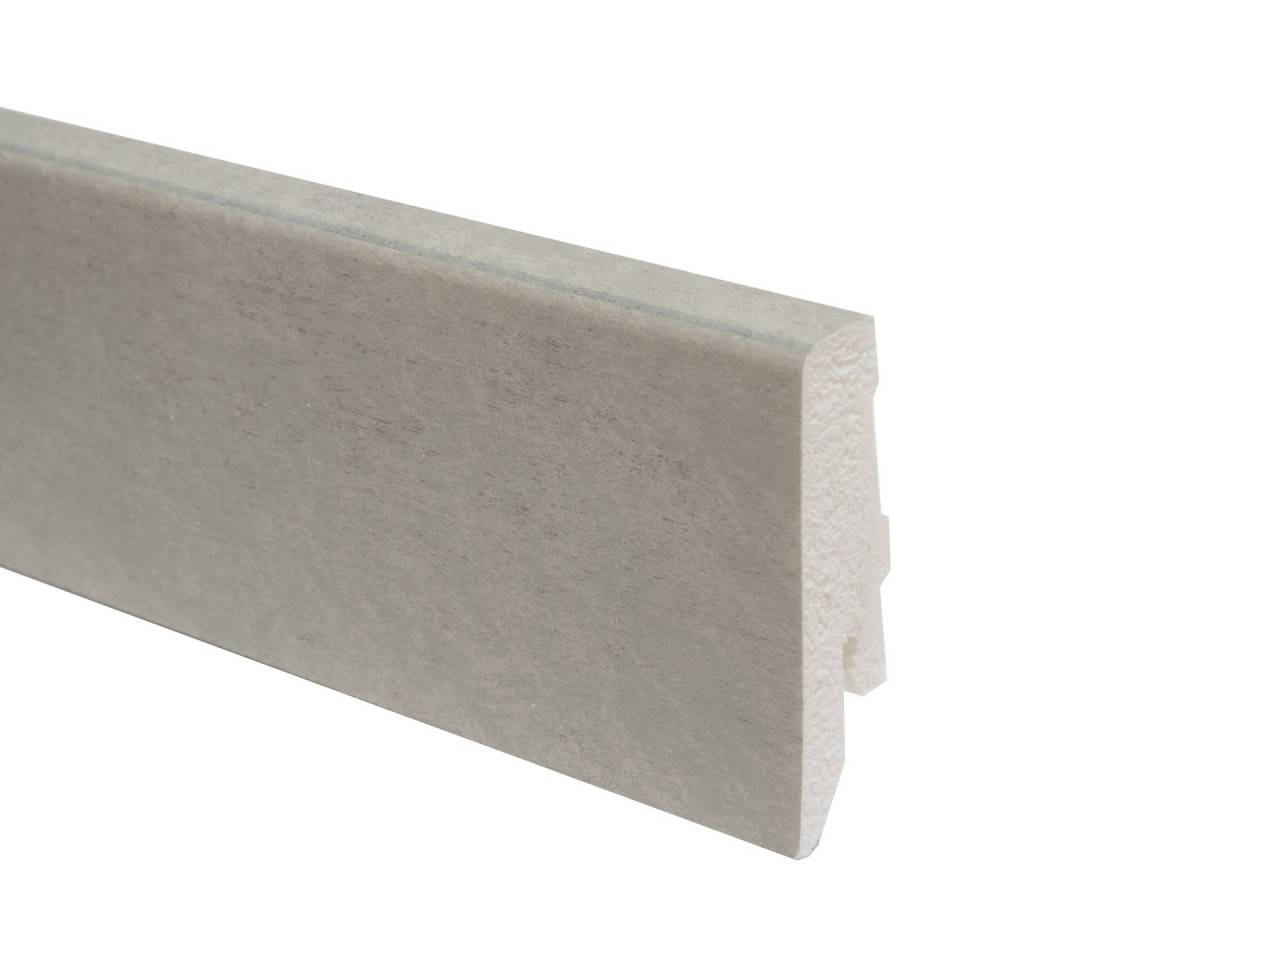 L049 Plastic Skirting Board K58C (R059|R062)